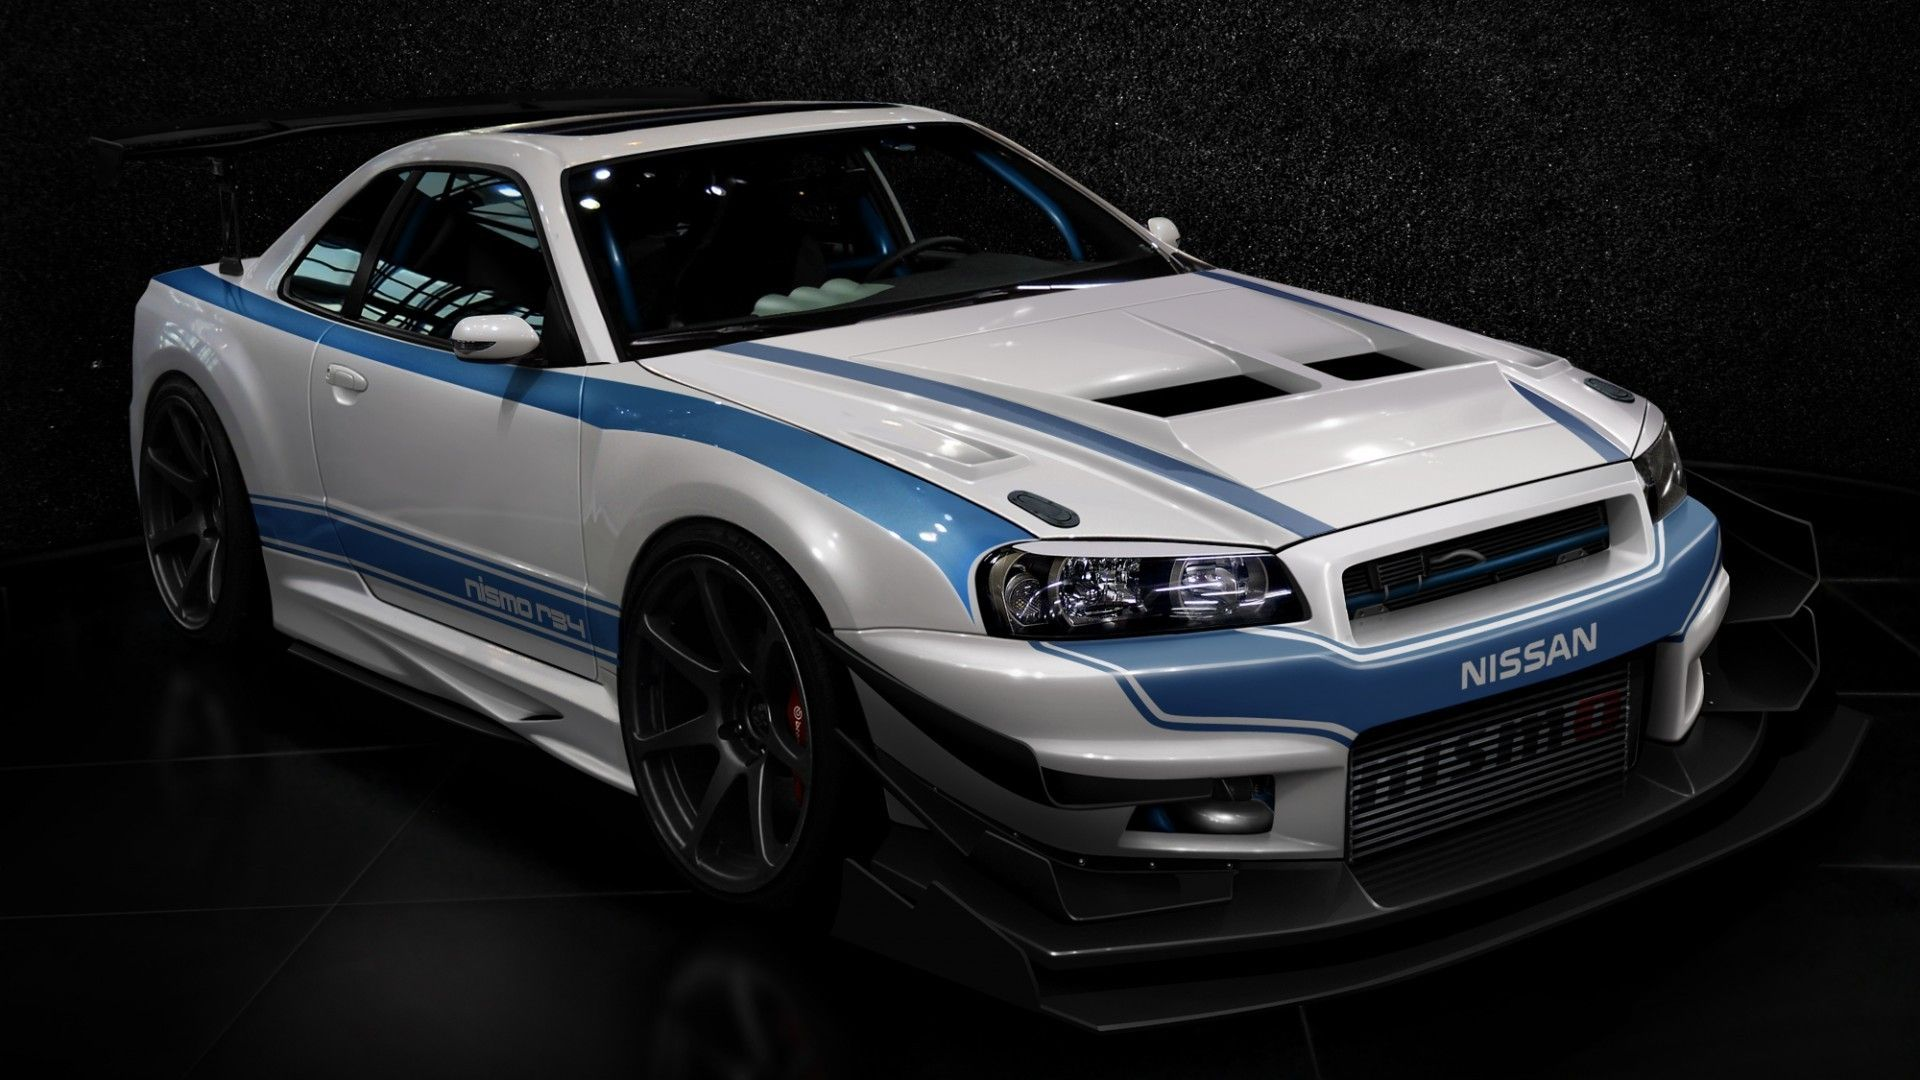 Cars Design Tuning Tuned Nissan Skyline Gt R